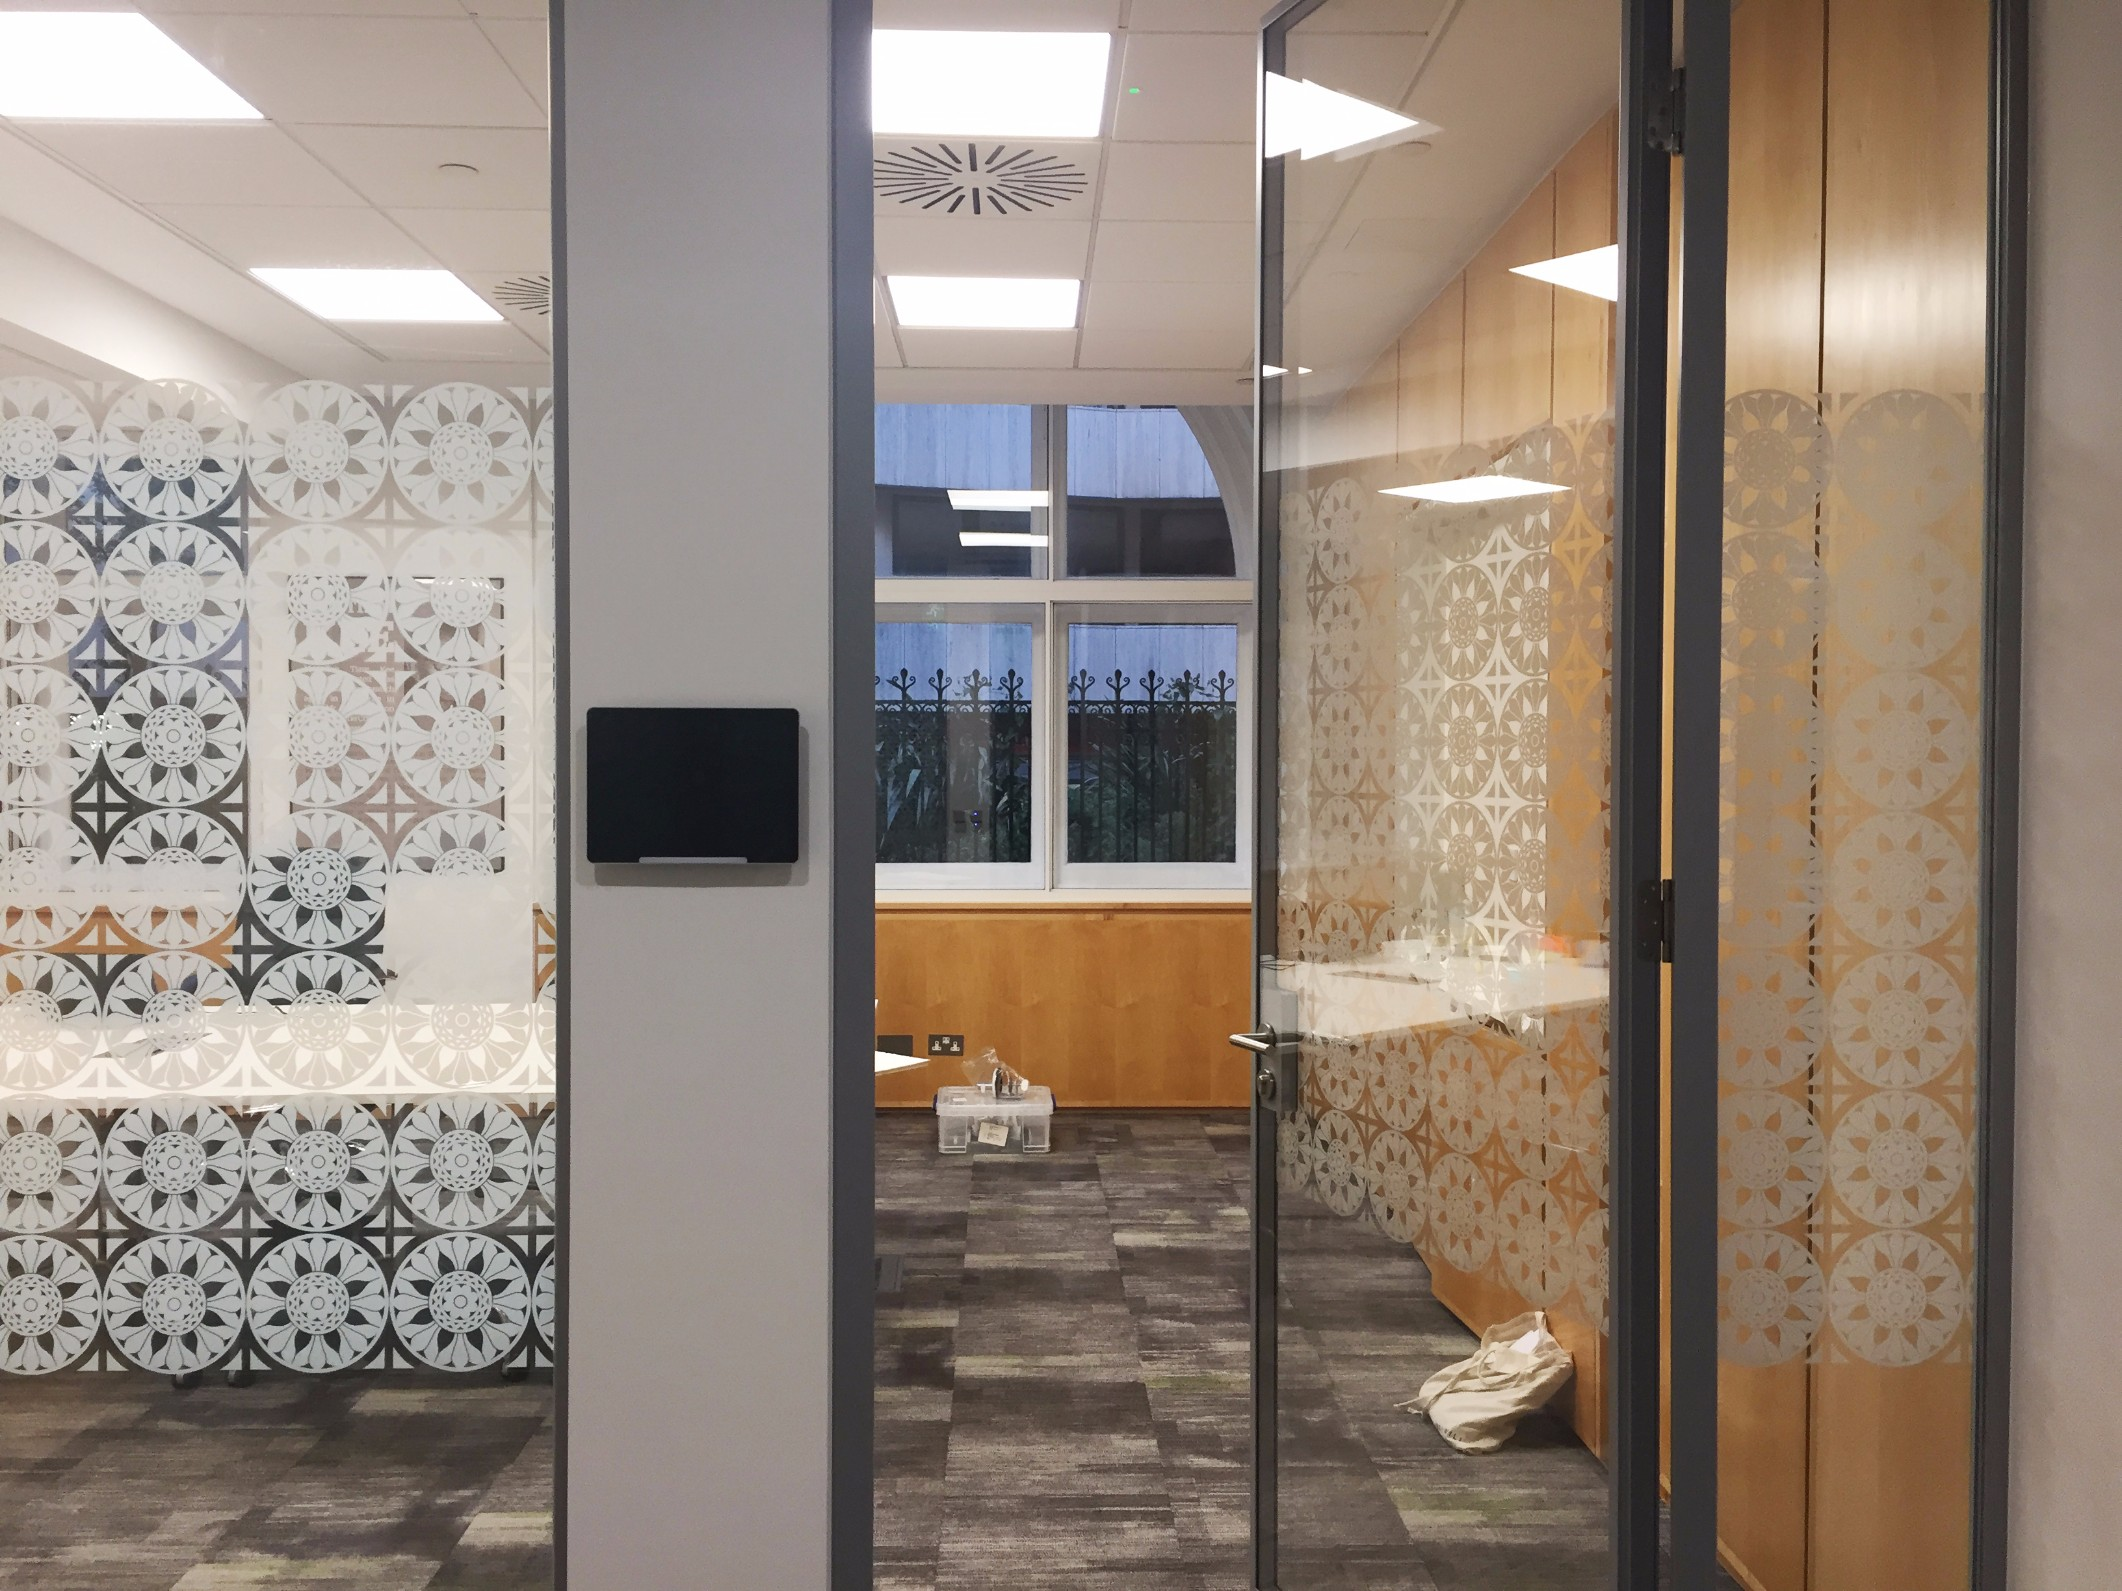 Prudential office graphics